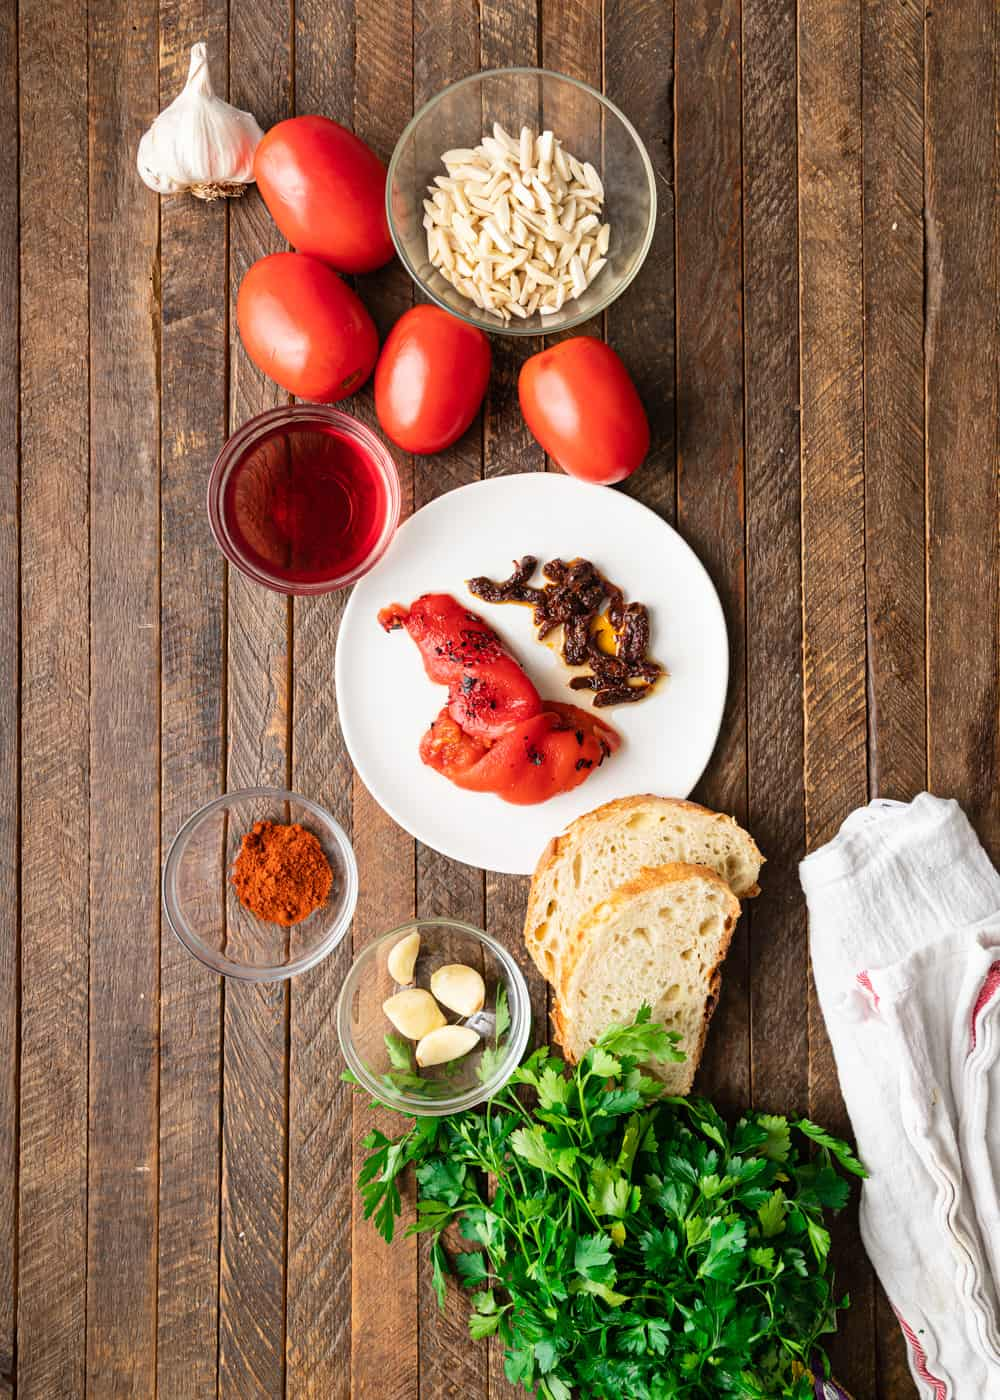 overhead photo: fresh tomatoes, garlic, pine nuts, and other ingredients to make a romesco sauce recipe laying on a wooden table